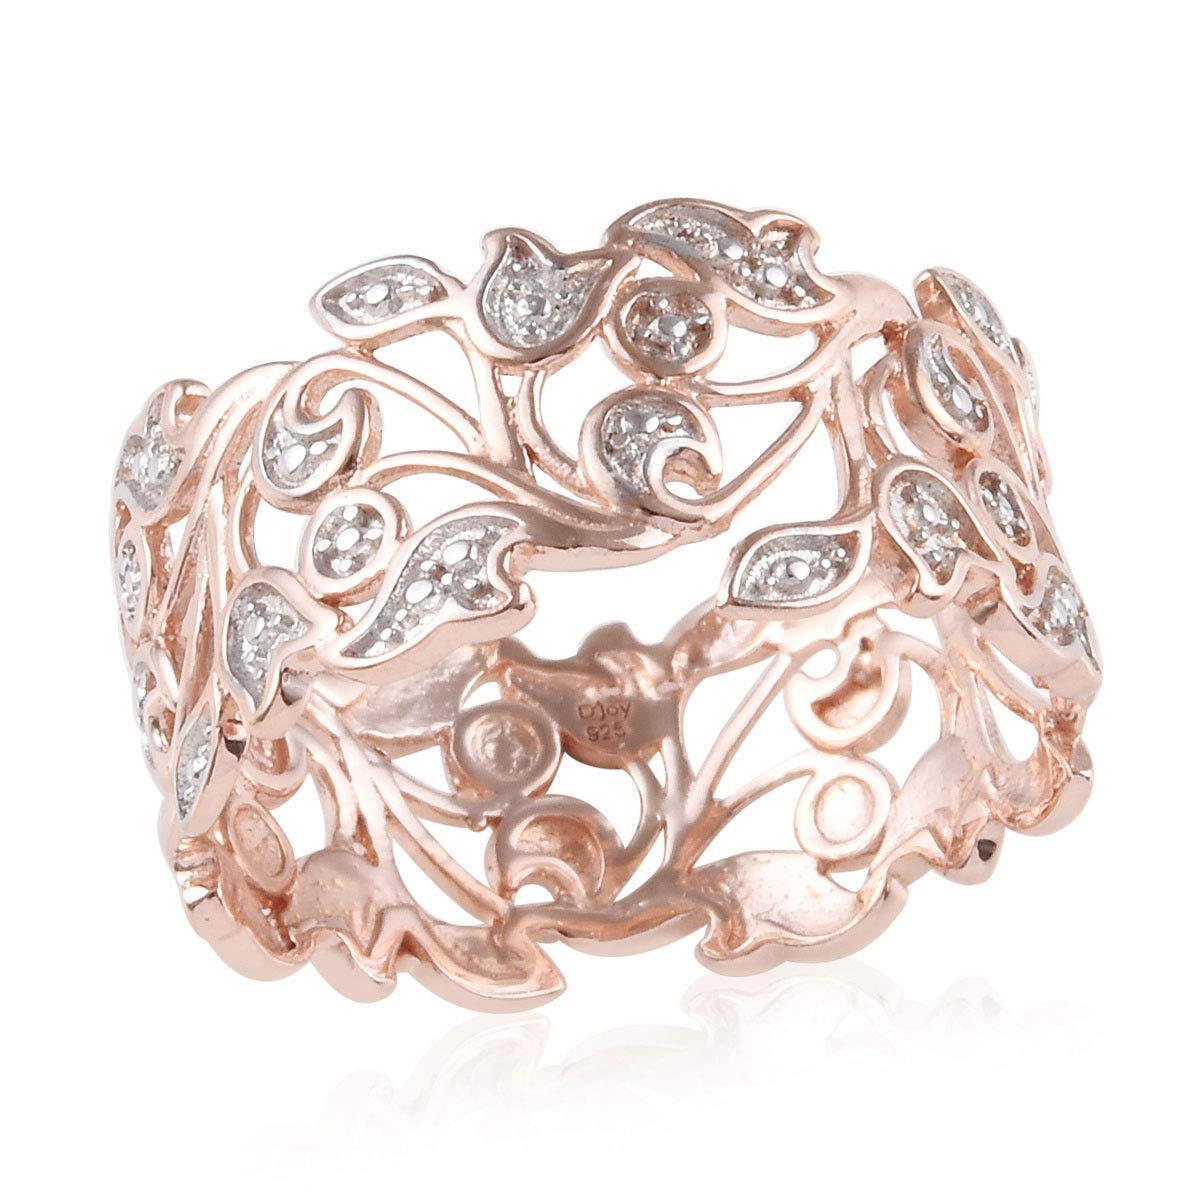 925 Sterling Silver 14K Rose Gold Plated Round Diamond Statement Ring for Women Jewelry Gift H-I Color I3